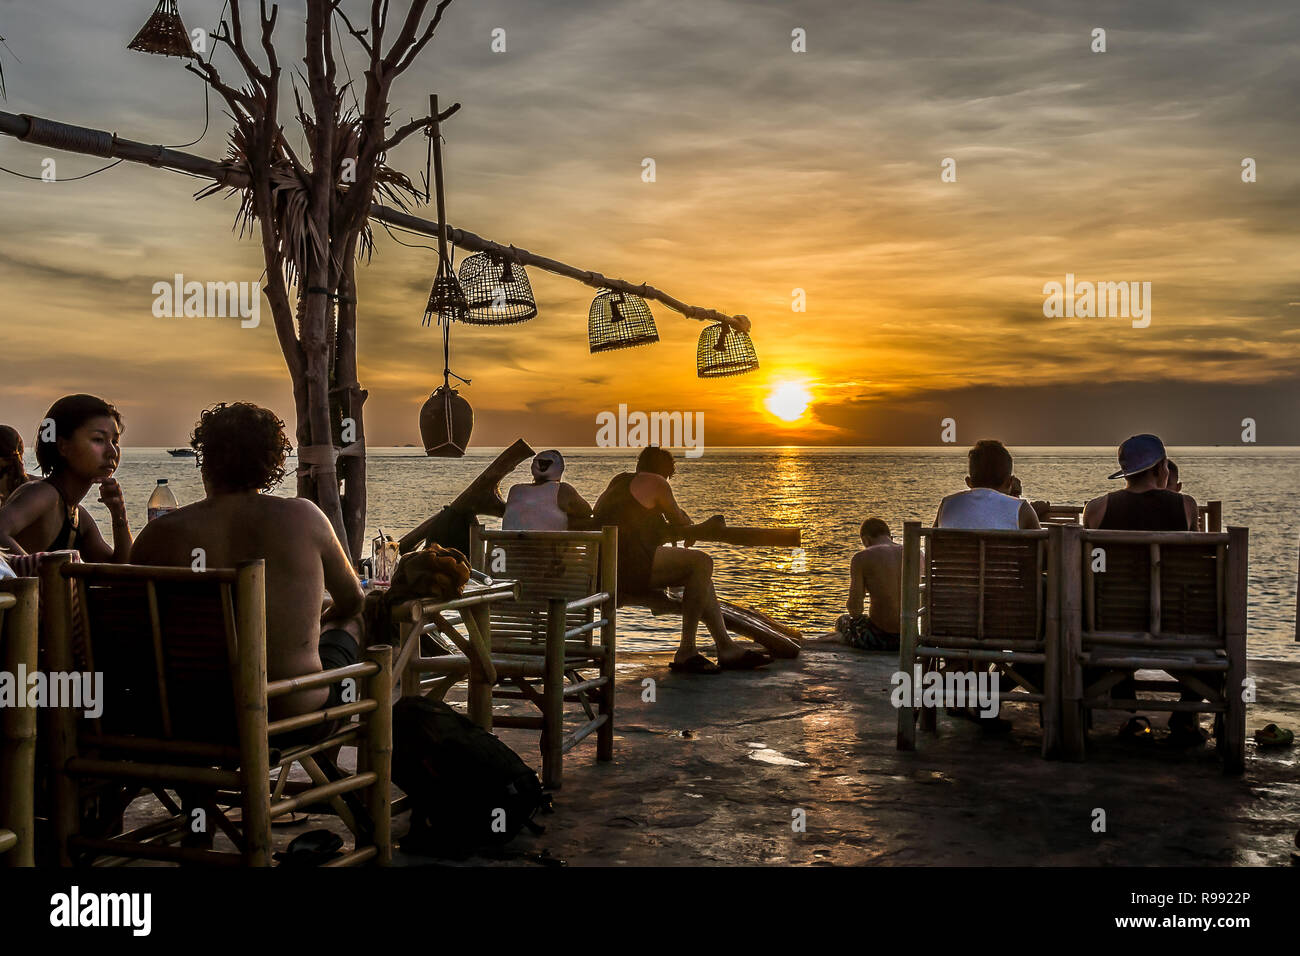 An outdoor bar on a cliff with young people relaxing with their drinks in the sunset, Haad Son, Koh Pangan, Thailand, May 8, 2016, Stock Photo